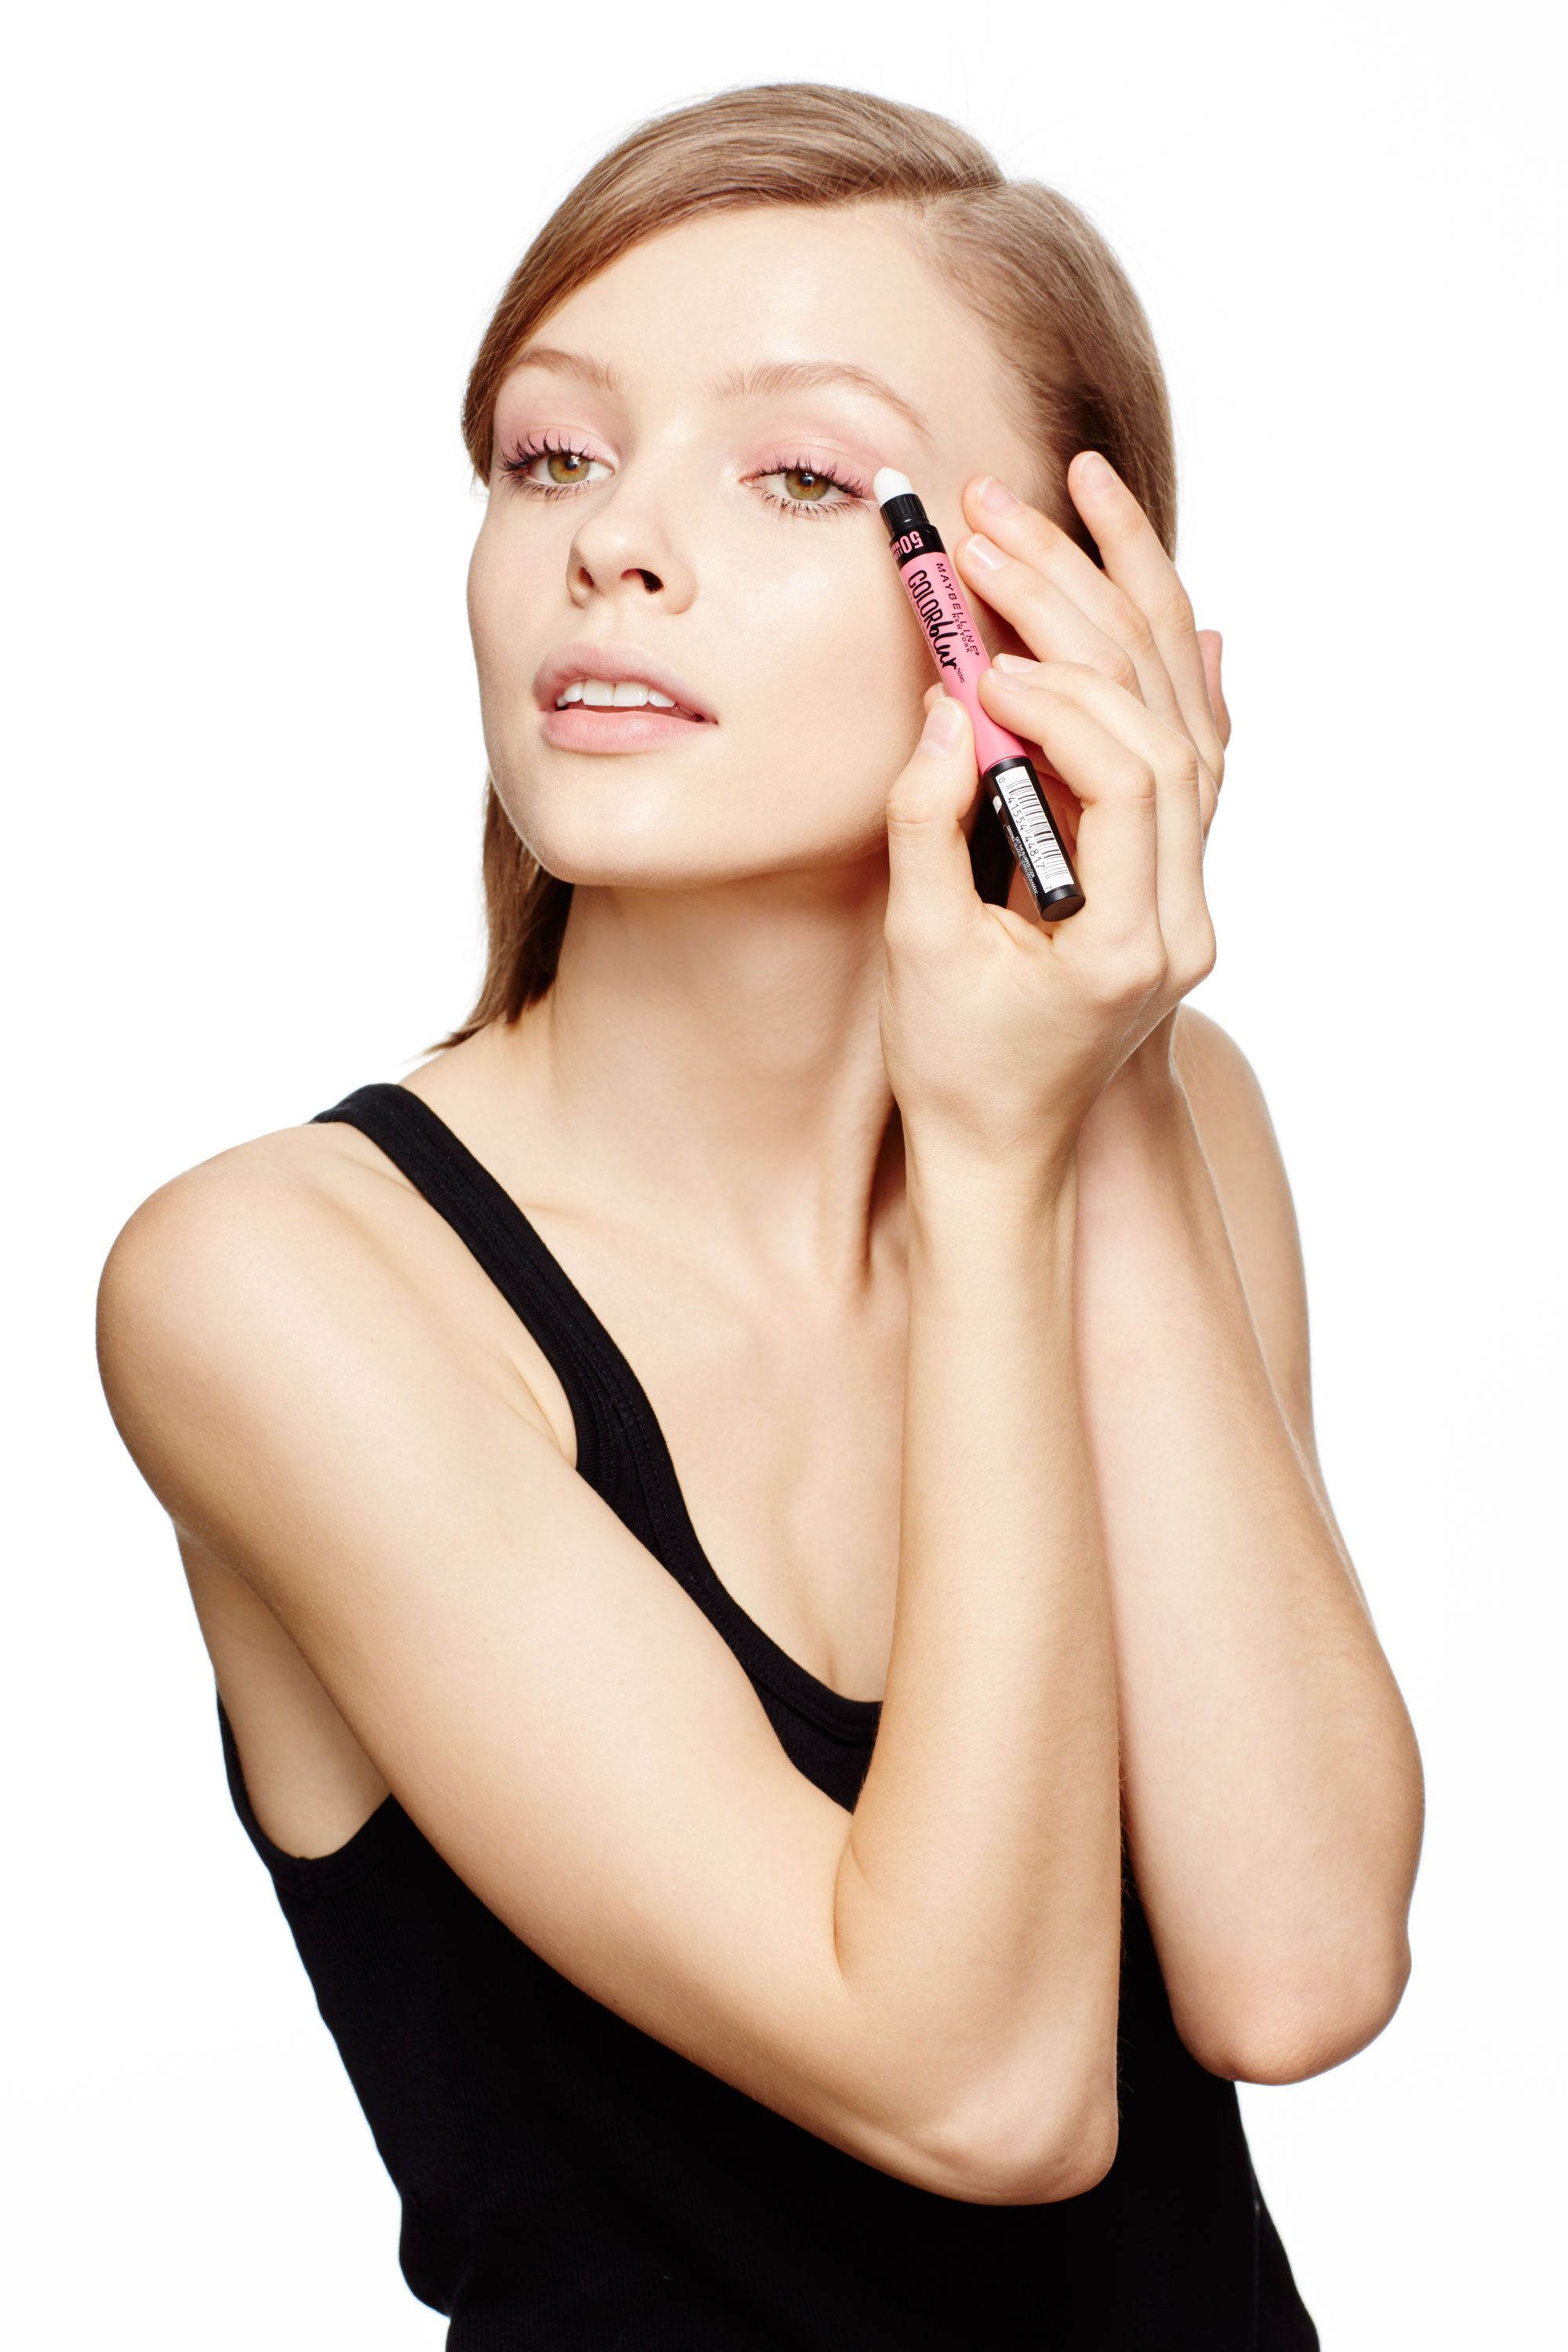 "<p>Using the precise tip of the Color Blur crayon, draw a band of pink across your upper lashes just as you would with eyeliner. Women with fairer skin tones should opt for a cool pink. (Oquendo used <a href=""http://www.amazon.com/Maybelline-New-York-Studio-Color/dp/B00YJJXC7G/ref=sr_1_1?ie=UTF8&qid=1448048306&sr=8-1&keywords=maybelline+color+blur"" target=""_blank"">I Like To Mauve It</a> here.) If you have a medium to deep complexion, reach for a warmer, orange-based hue like <a href=""http://www.amazon.com/Maybelline-New-York-Studio-Color/dp/B00YJJXC7G/ref=sr_1_1?ie=UTF8&qid=1448048306&sr=8-1&keywords=maybelline+color+blur"" target=""_blank"">I'm Blushing!</a> </p><p>Next, diffuse the pigment up towards the crease with the silicone smudger, using a gentle, windshield wiper motion. Overdosed on color? Use a tissue to blot away any excess. </p><p>""This matte lipstick goes on like a cream but dries to a powdery finish, so it sets without having to layer anything over top,"" says Oquendo. For more definition, add a coat of brown—not black—mascara to top and bottom lashes. ""I love pinks and browns together—it looks less severe,"" he says.</p>"